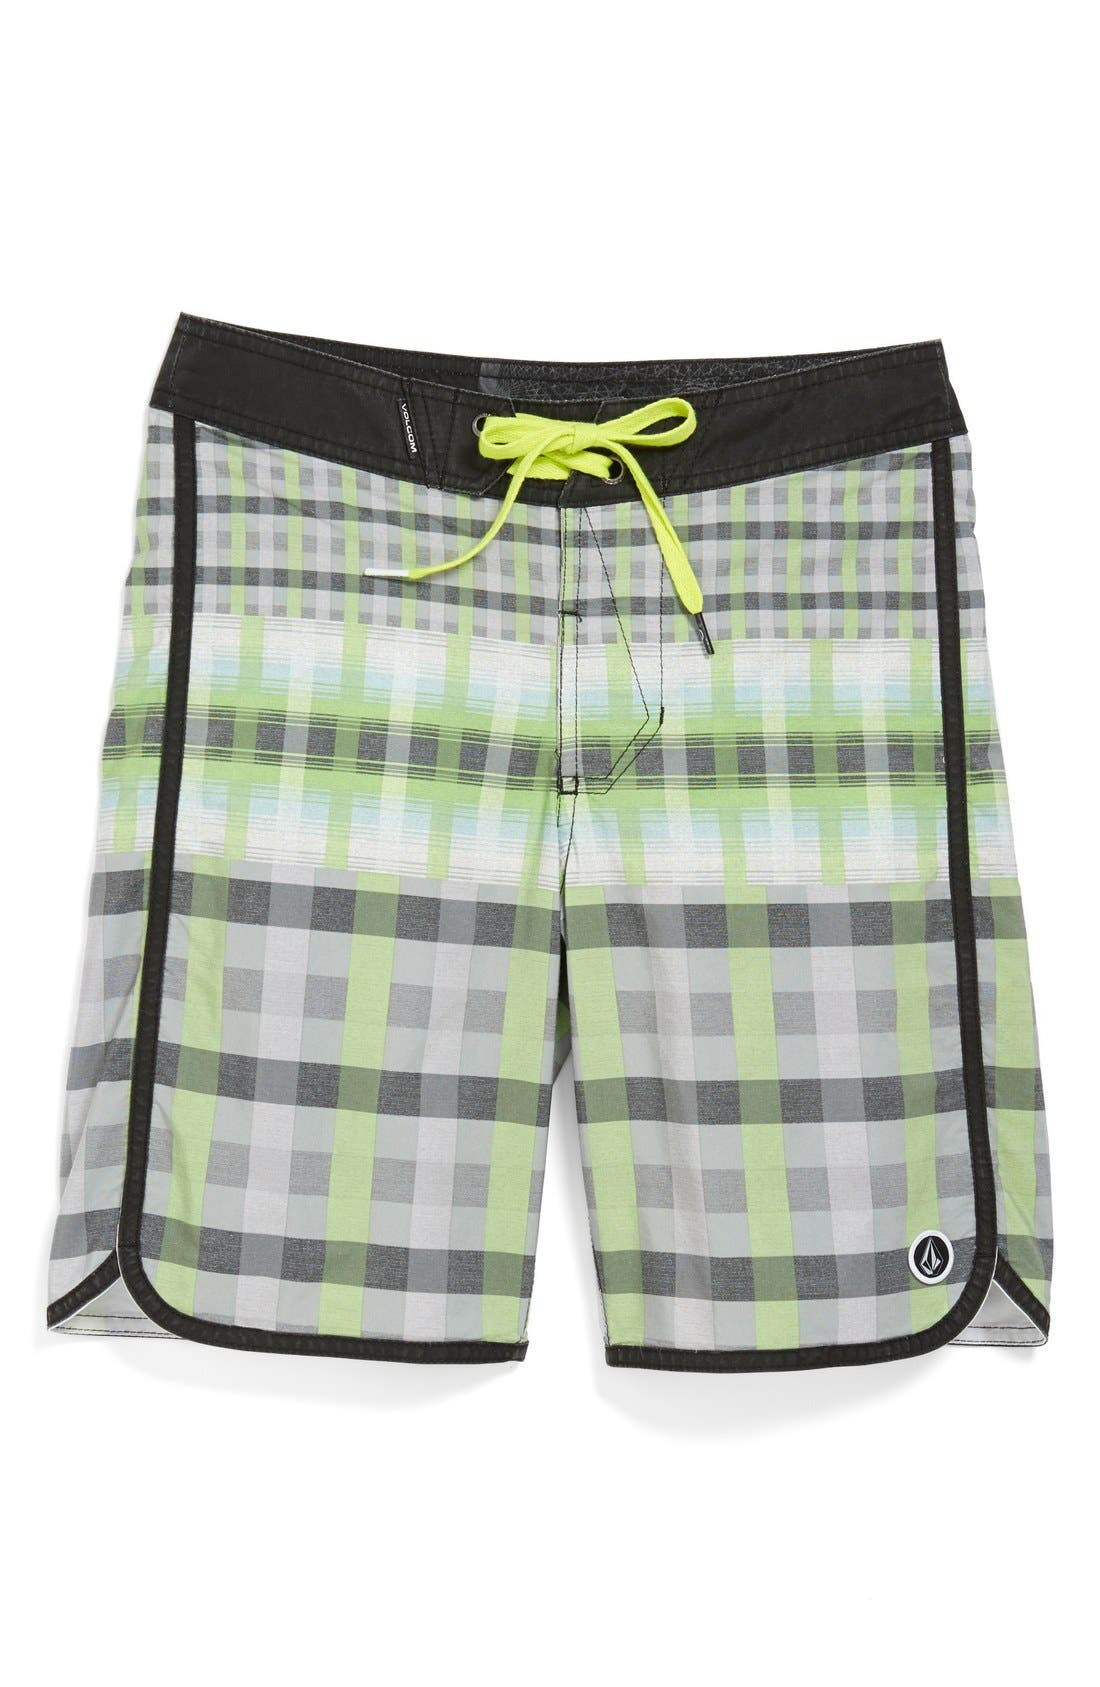 Main Image - Volcom 'Scallaid' Board Shorts (Big Boys)